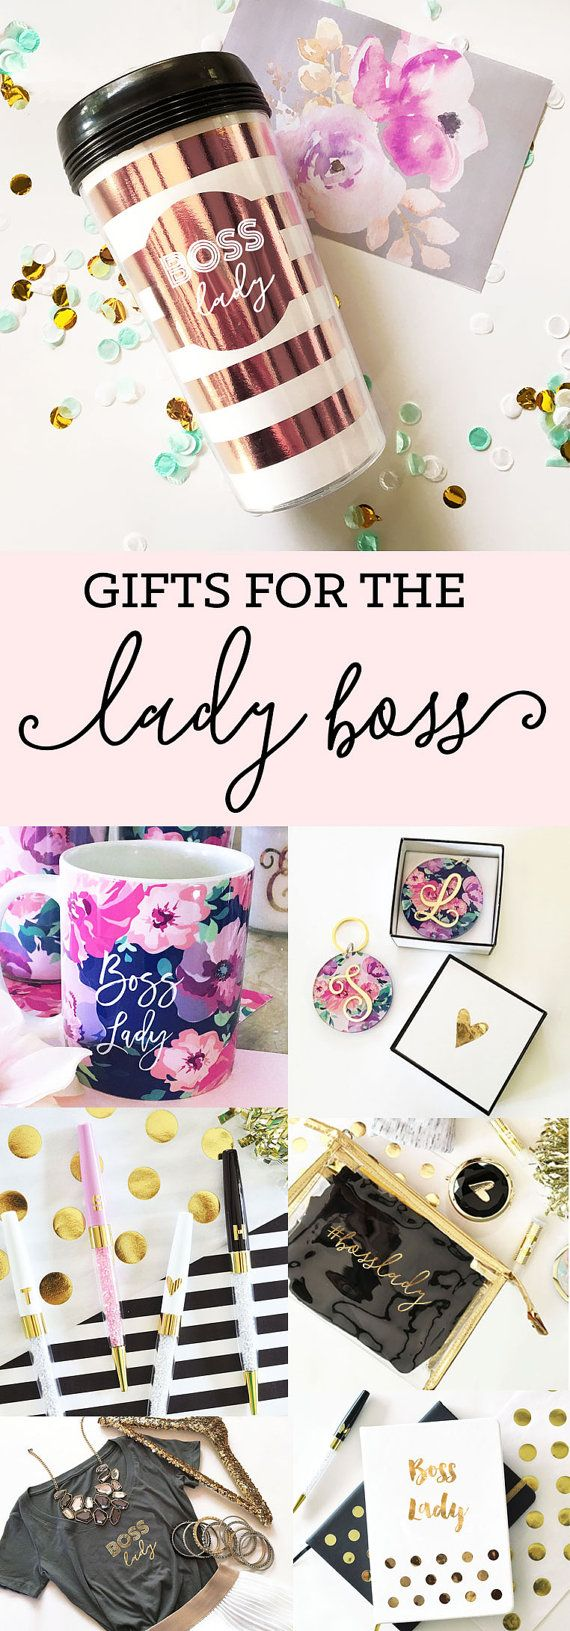 Boss Gifts for Boss Lady | Gift Ideas for Women | Boss Christmas Gift | Lady Boss Girl Boss